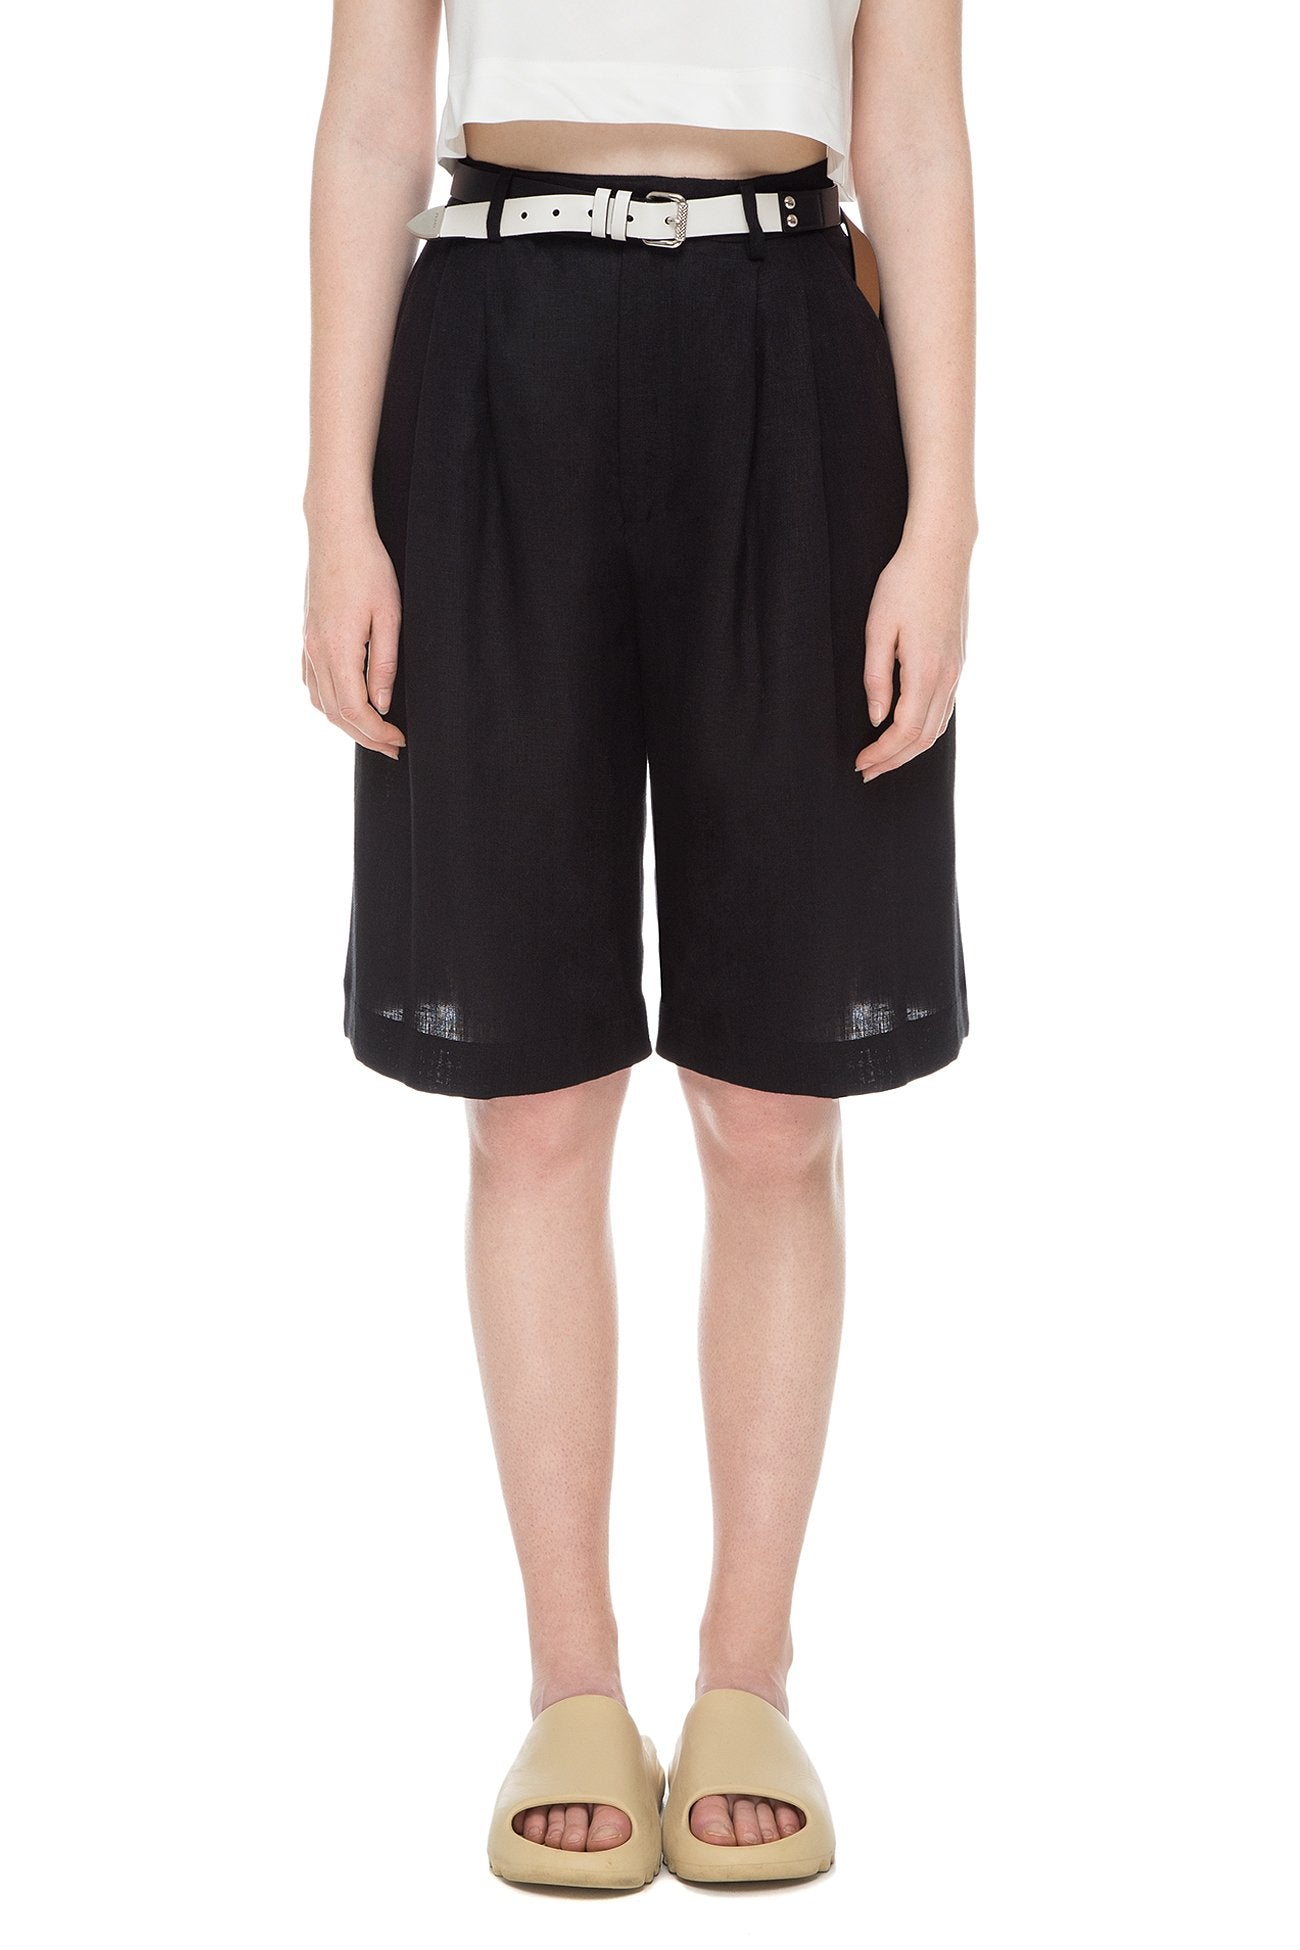 Black shorts with tucks